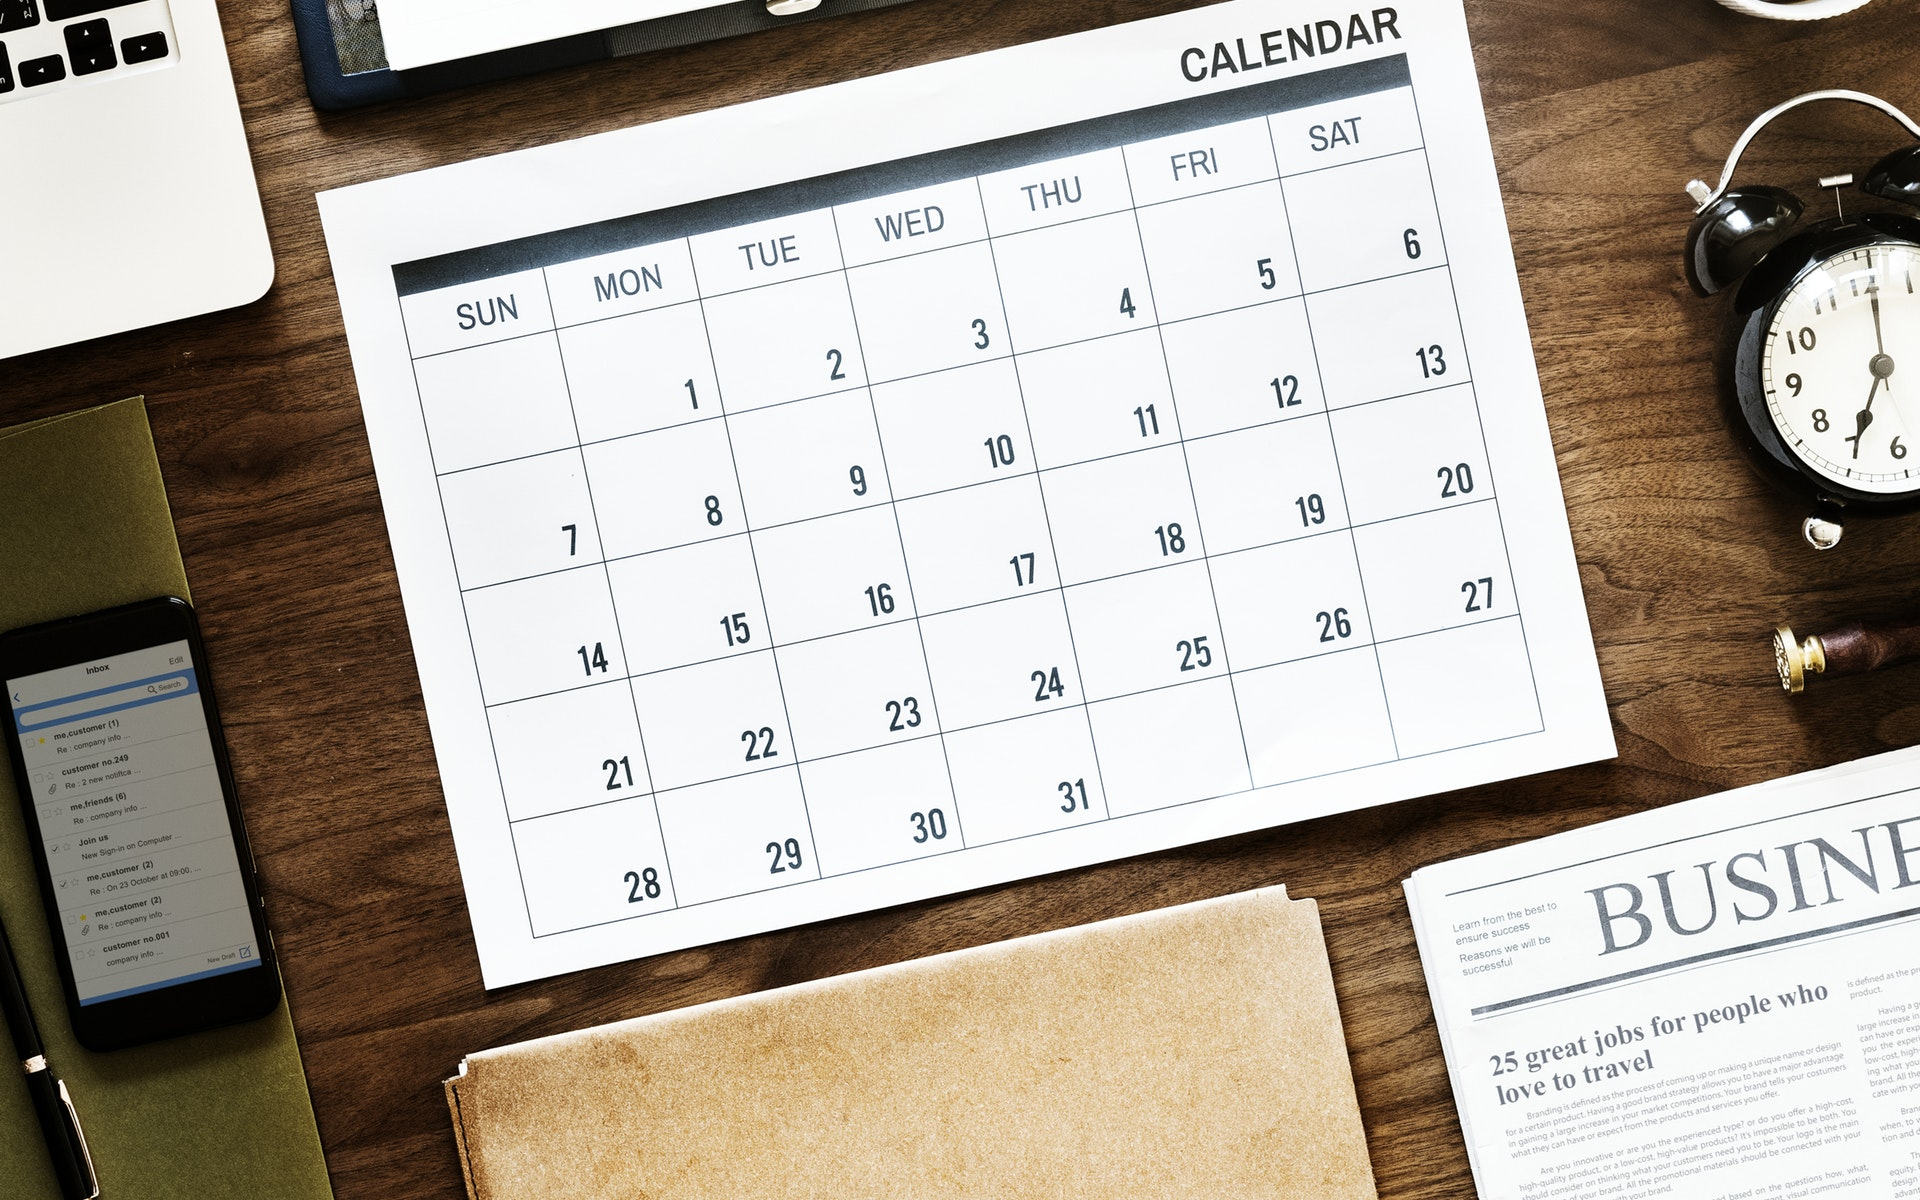 calendar and other business items on a desk